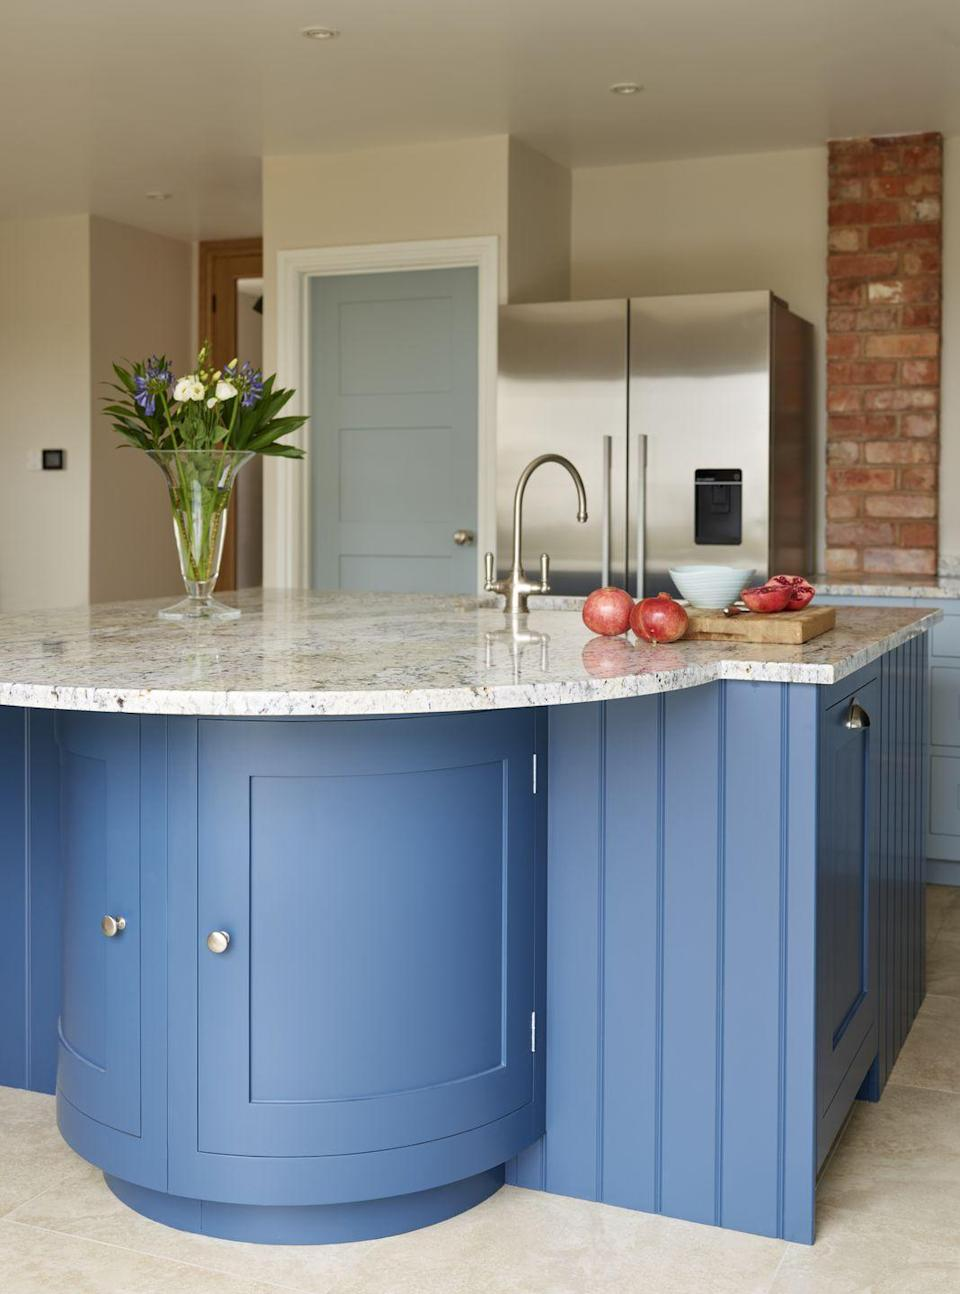 """<p>Switch things up with unconventional shapes for your kitchen island design. Unique shapes like curves will highlight your personality, while also adding character. </p><p>• 'Arbor' kitchen from <a href=""""https://www.harveyjones.com/our-kitchens/arbor-kitchens"""" rel=""""nofollow noopener"""" target=""""_blank"""" data-ylk=""""slk:Harvey Jones"""" class=""""link rapid-noclick-resp"""">Harvey Jones</a><br></p>"""